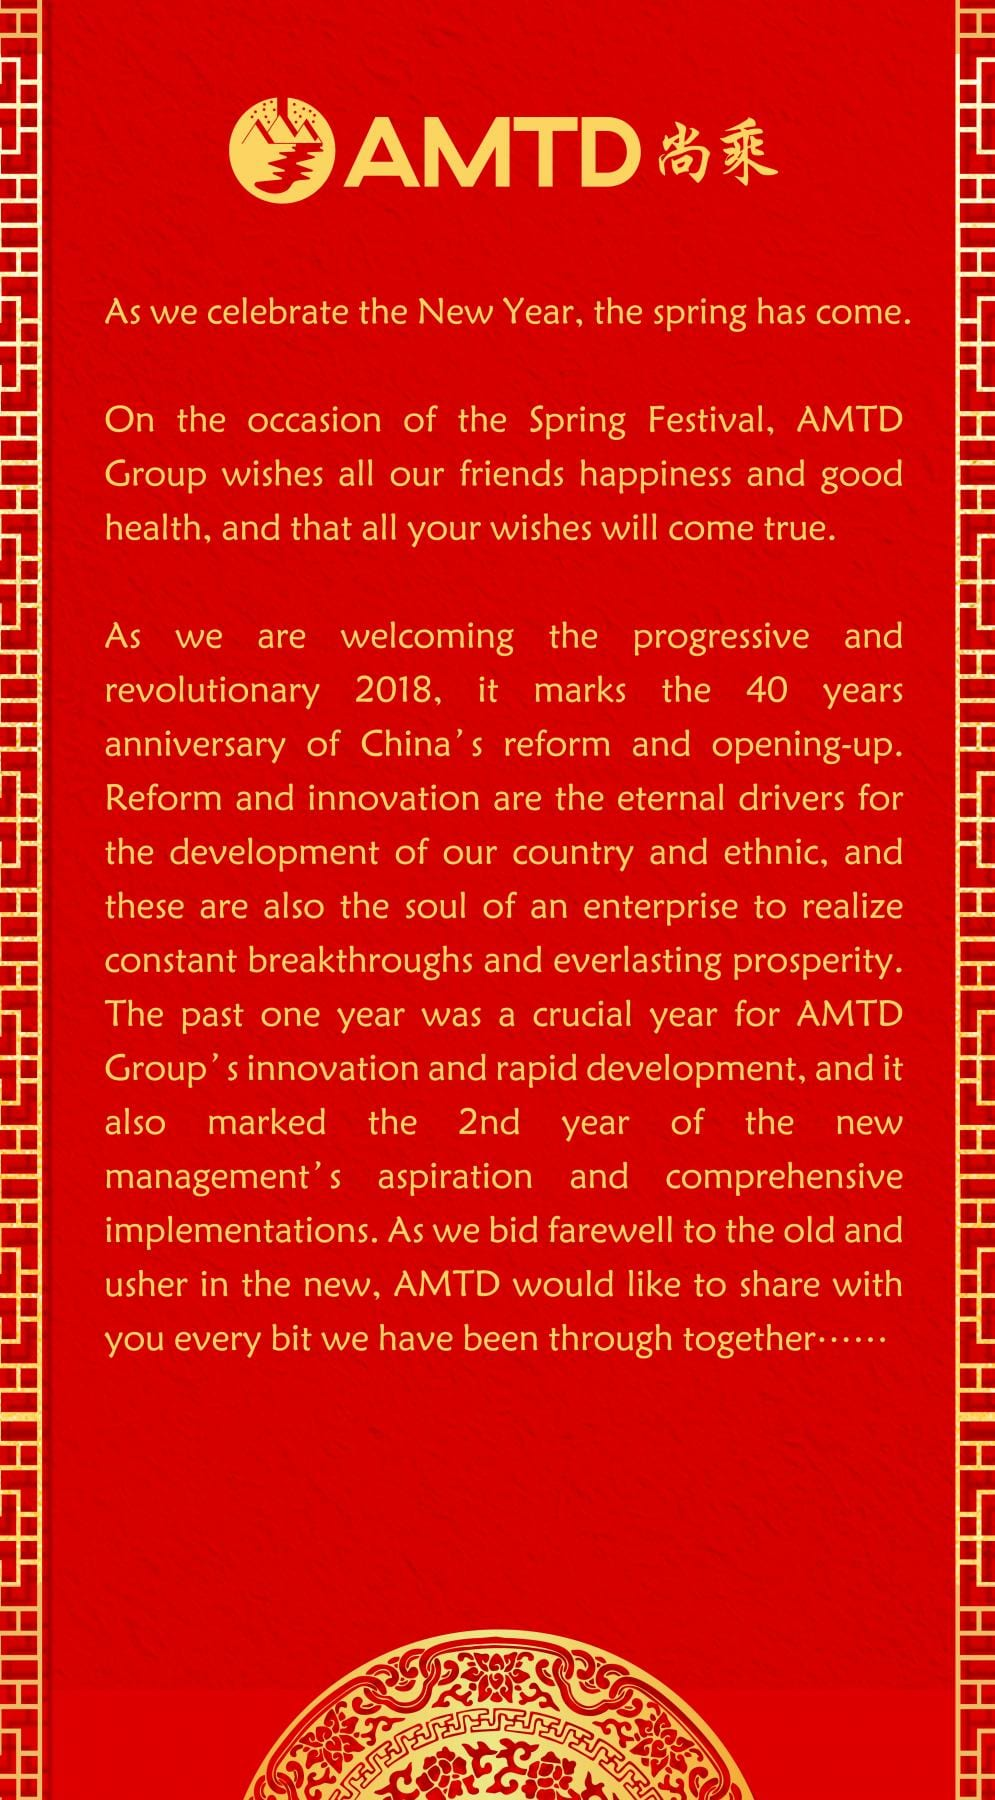 New Year Greetings from AMTD | Looking Back, bidding farewell to the old and ushering in the new